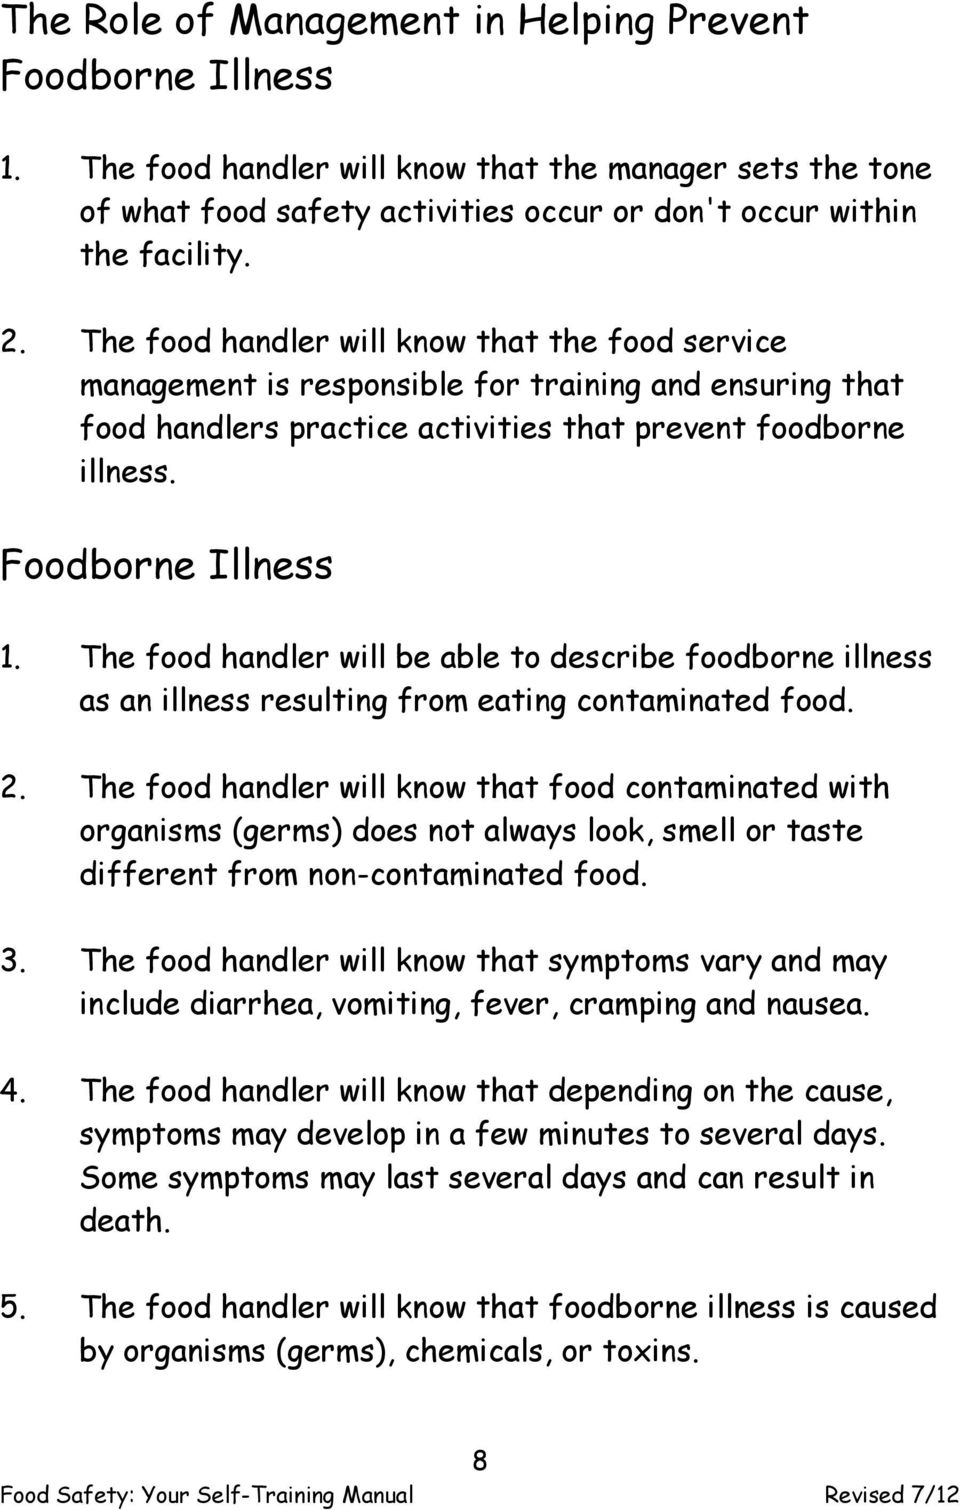 The food handler will be able to describe foodborne illness as an illness resulting from eating contaminated food. 2.